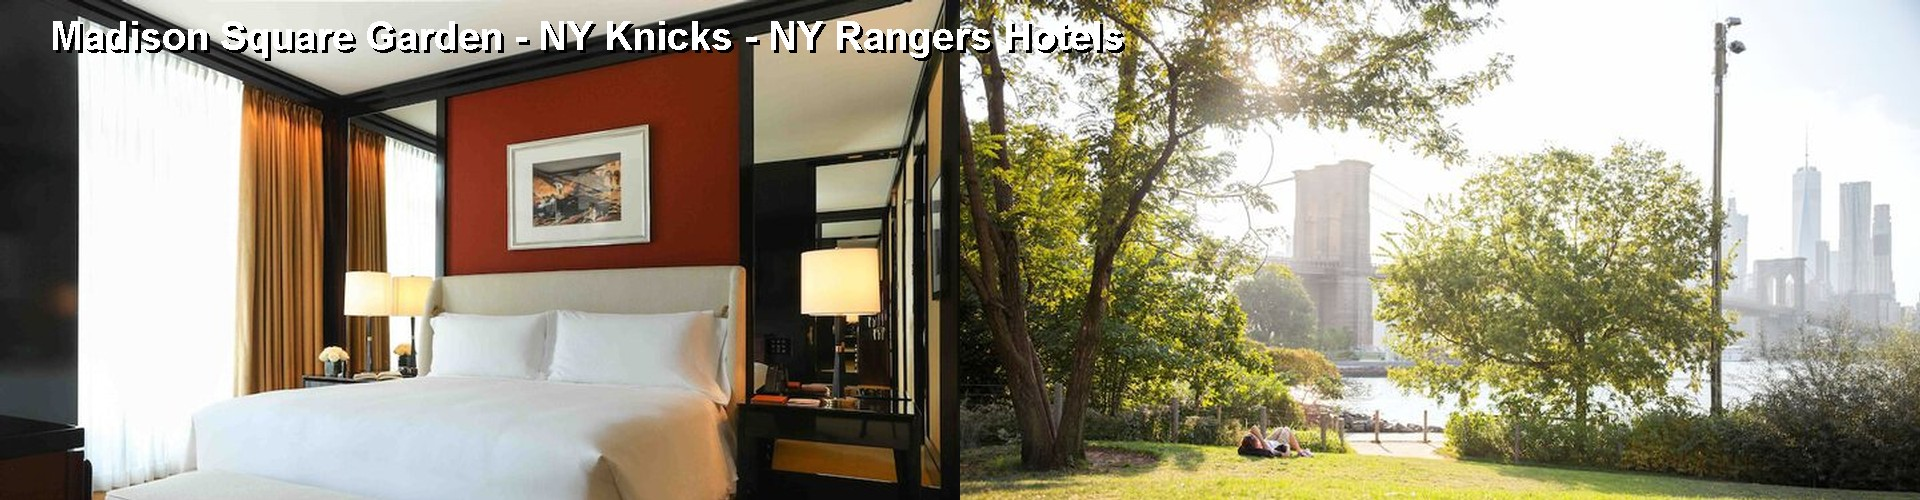 5 Best Hotels near Madison Square Garden - NY Knicks - NY Rangers